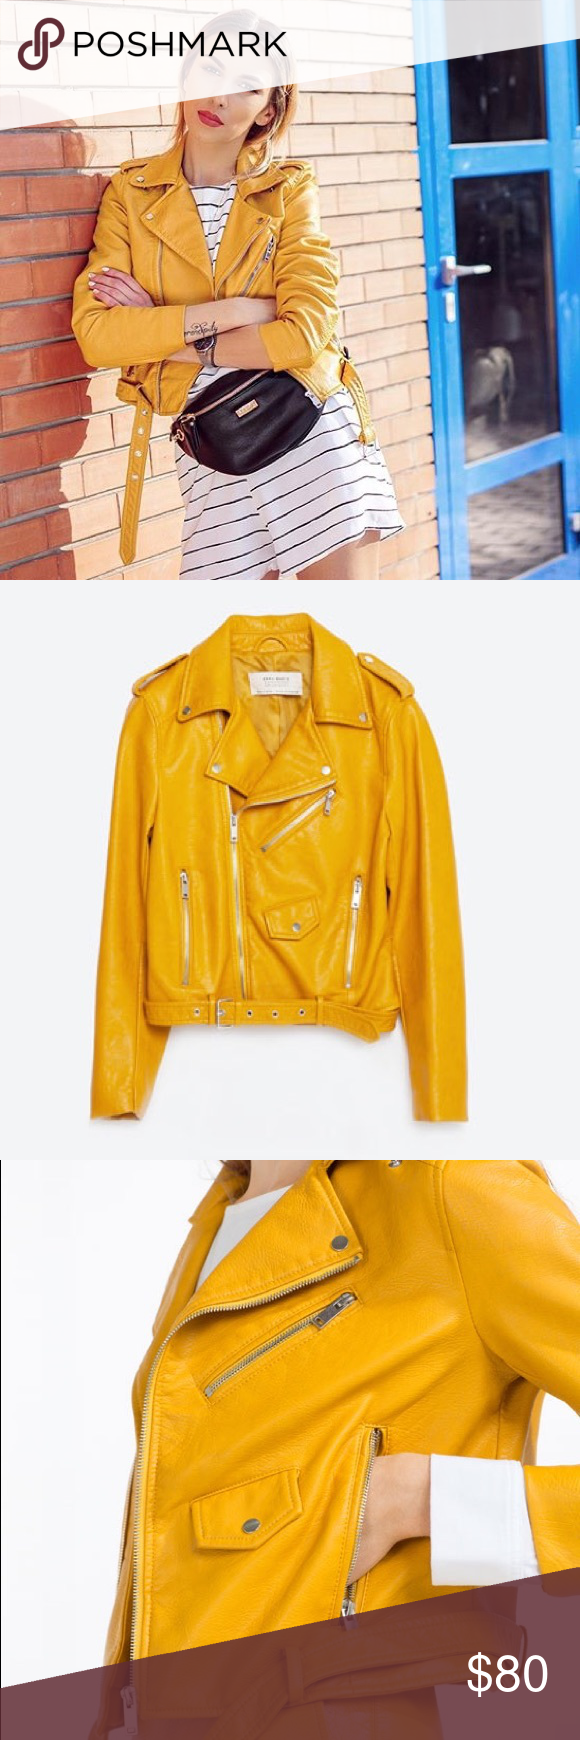 NWOT Zara Faux Leather Moto Jacket (With images) Faux